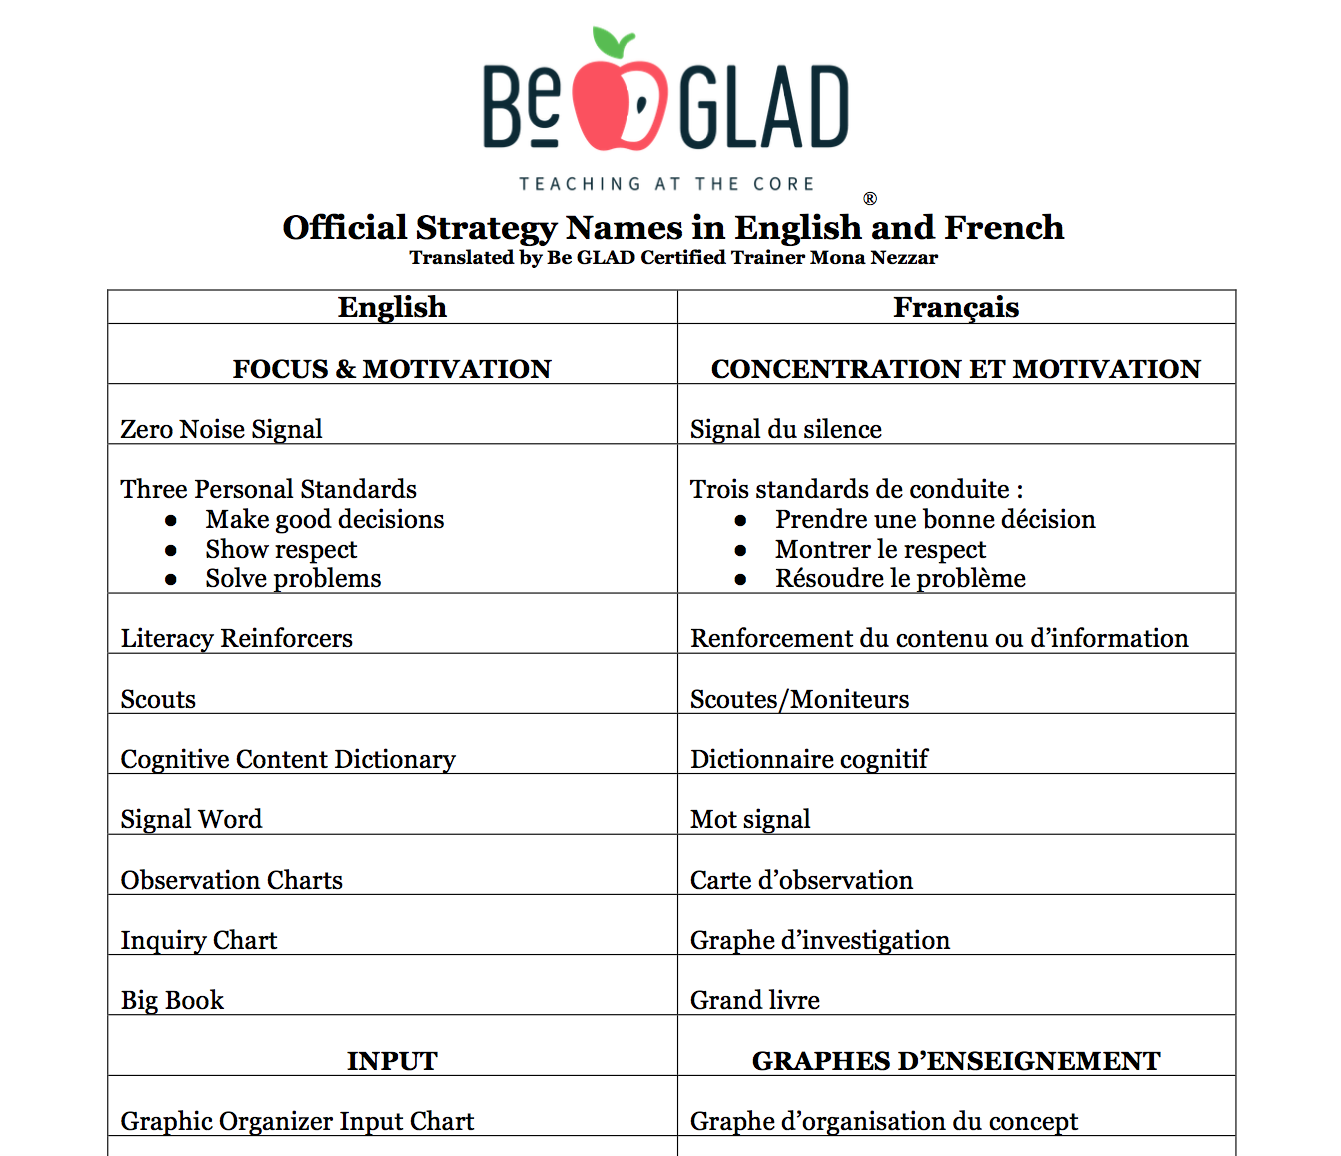 French Official Be GLAD Strategy Names